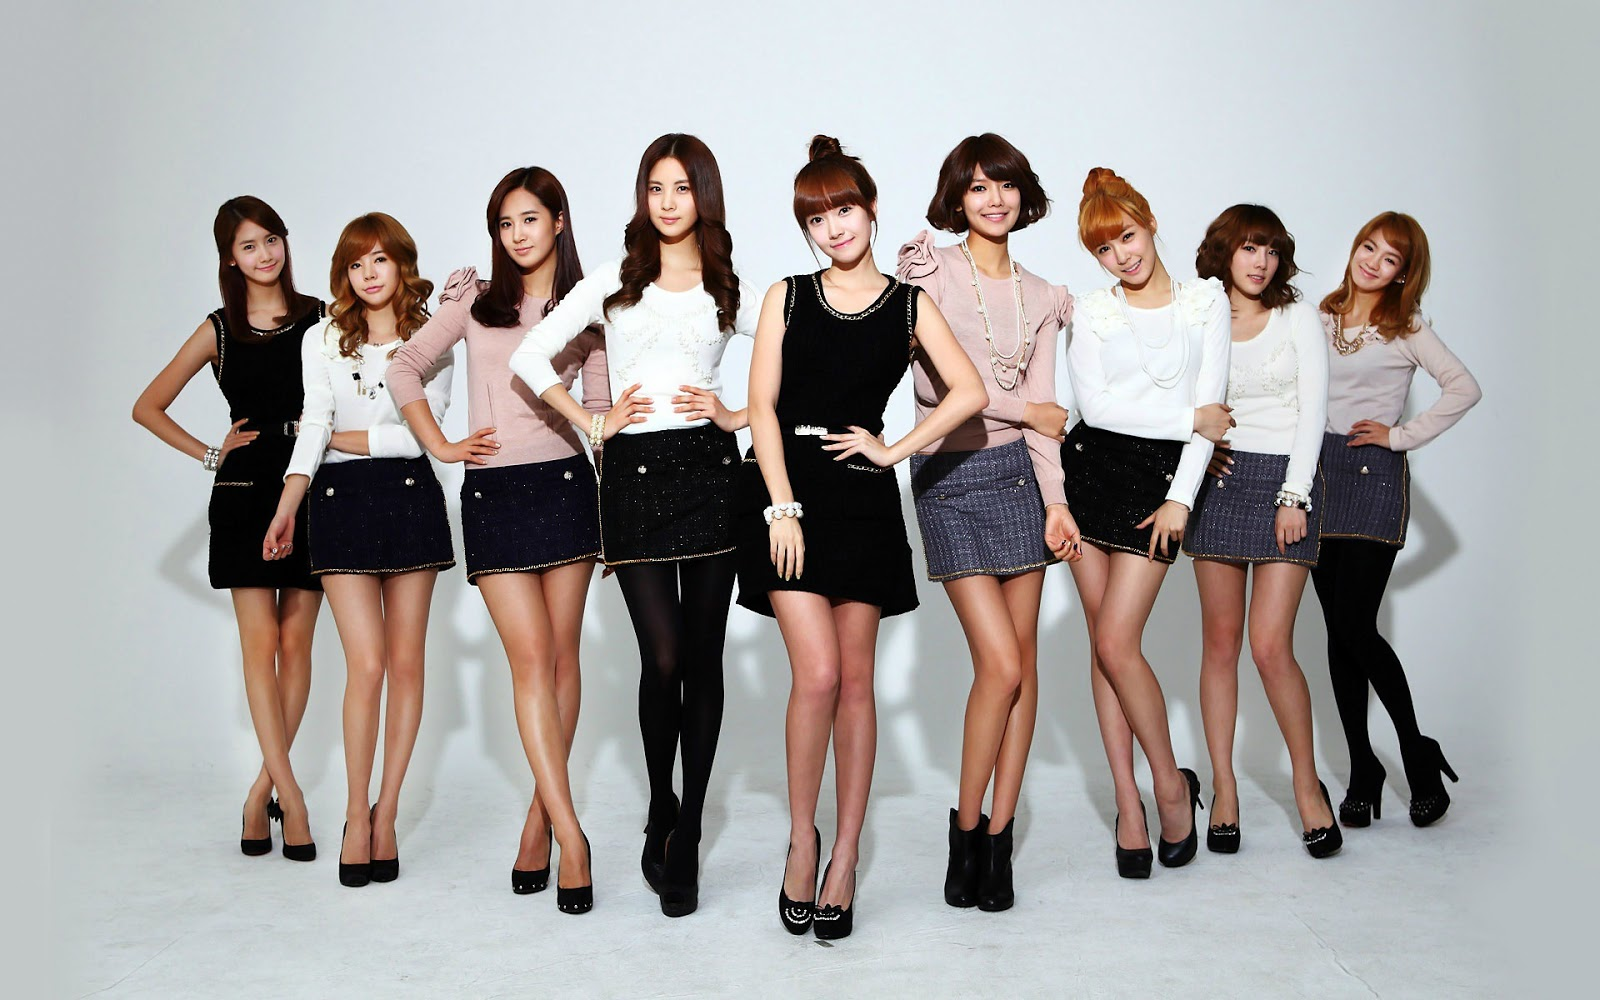 girls generation s hardship Often work more than men, yet are paid less gender discrimination affects girls and women throughout their lifetime and women and girls are often are the girls generation =)) girls generation =)) only available on studymode.